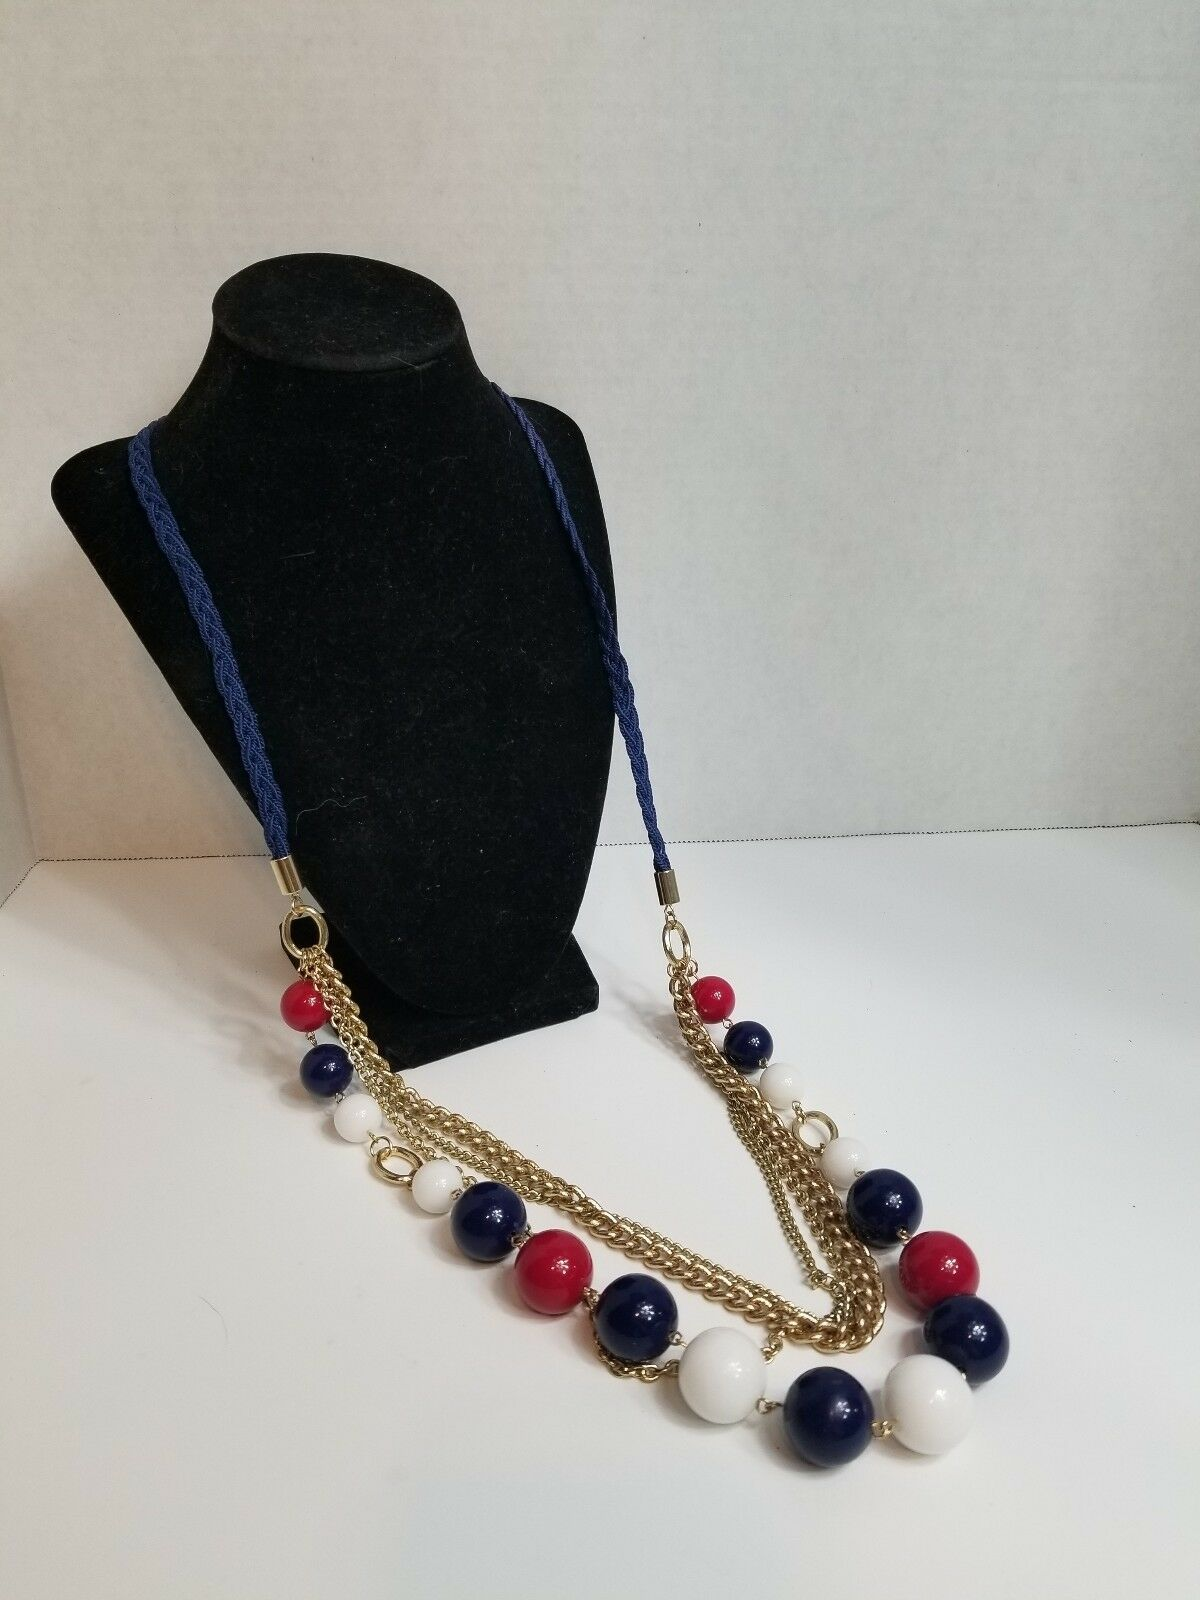 Multi Strand Beaded Chain Necklace - image 1